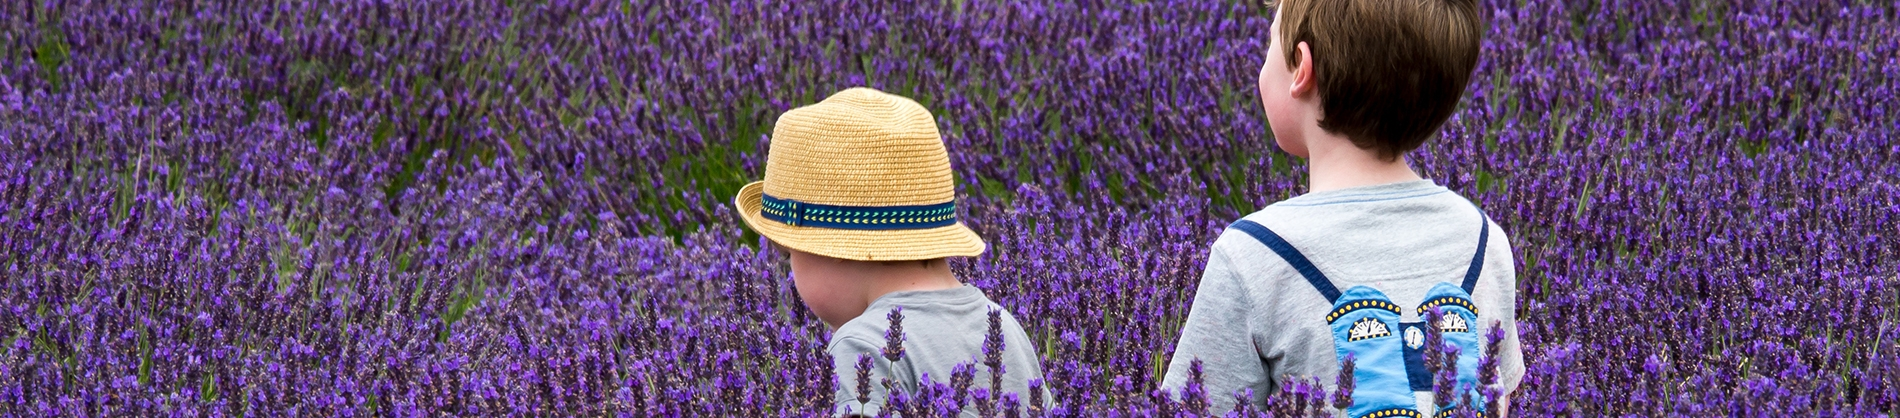 Two small children walking through a lavender field